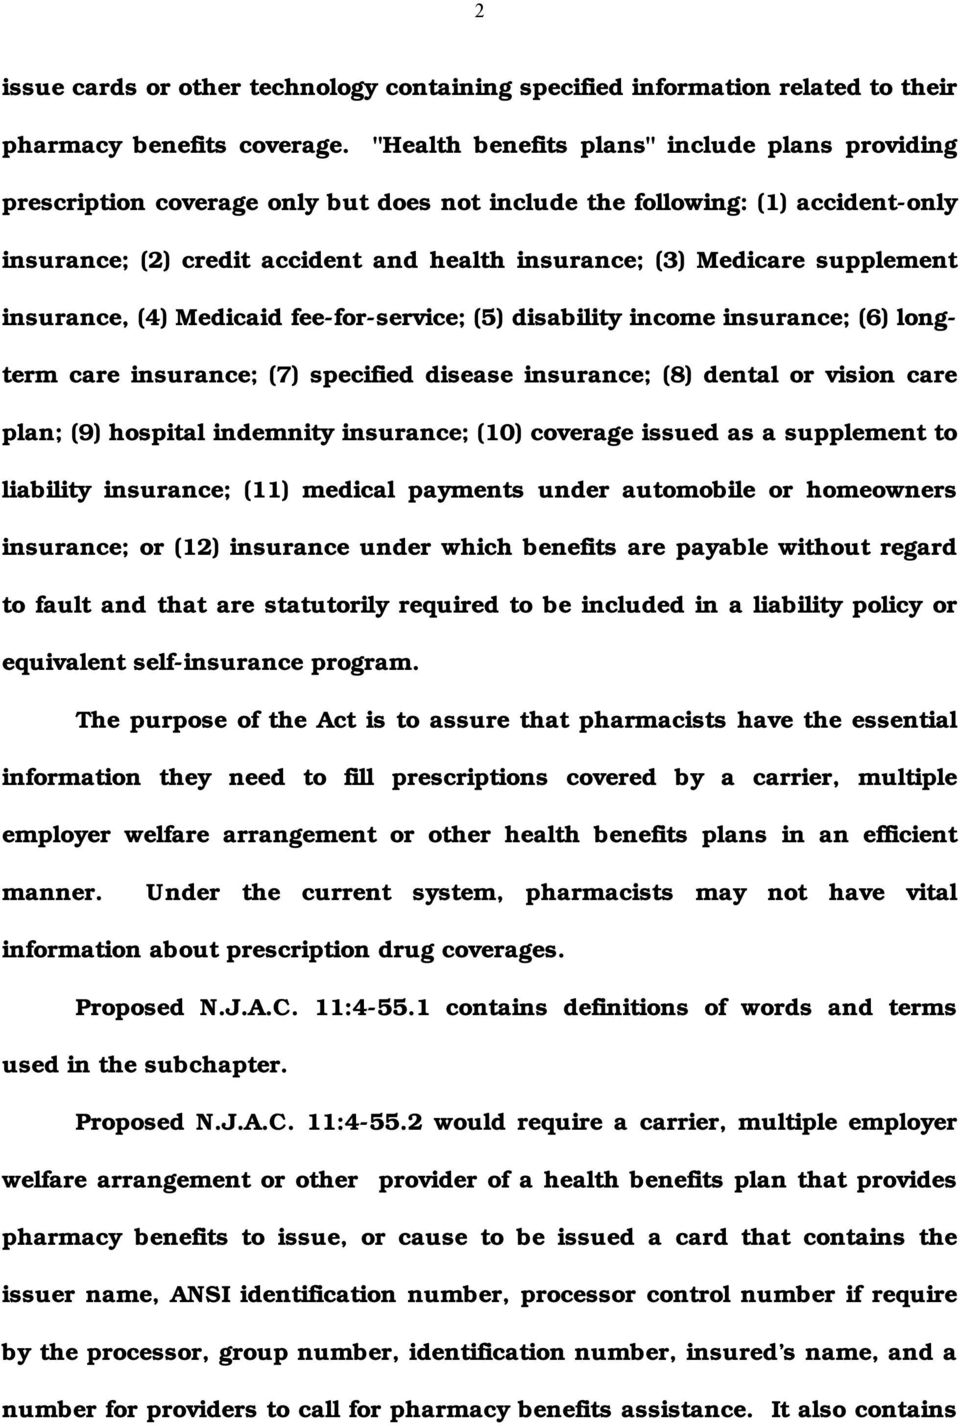 supplement insurance, (4) Medicaid fee-for-service; (5) disability income insurance; (6) longterm care insurance; (7) specified disease insurance; (8) dental or vision care plan; (9) hospital